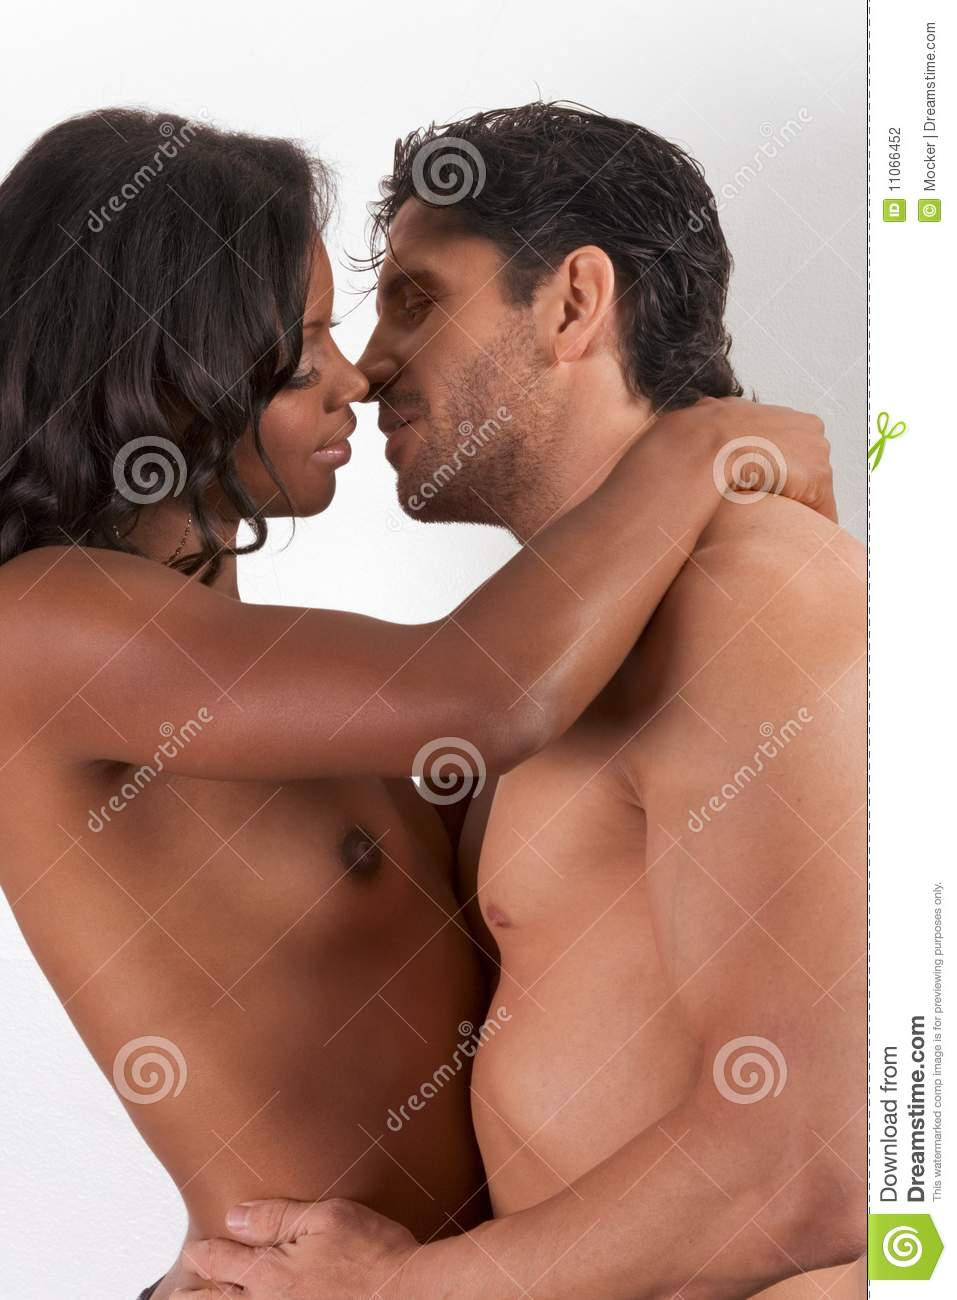 woman kissing nude man